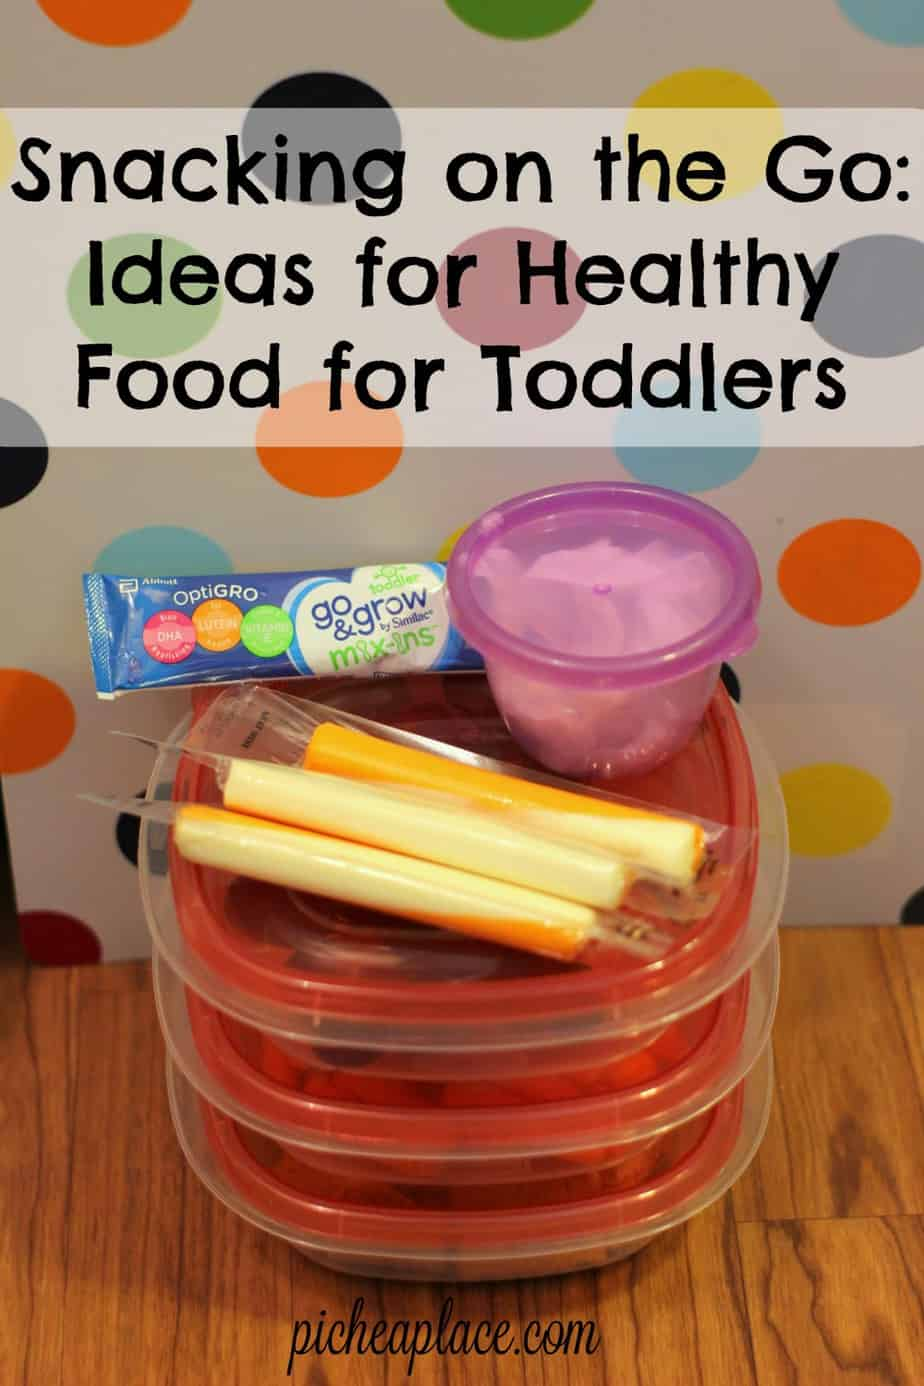 Being proactive and planning ahead helps us to snack healthy on the go. Here are a few ideas of healthy food for toddlers that are perfect for grabbing on your way out the door, helping to keep your toddler eating healthy all summer long! | Snacking on the Go: Ideas for Healthy Food for Toddlers